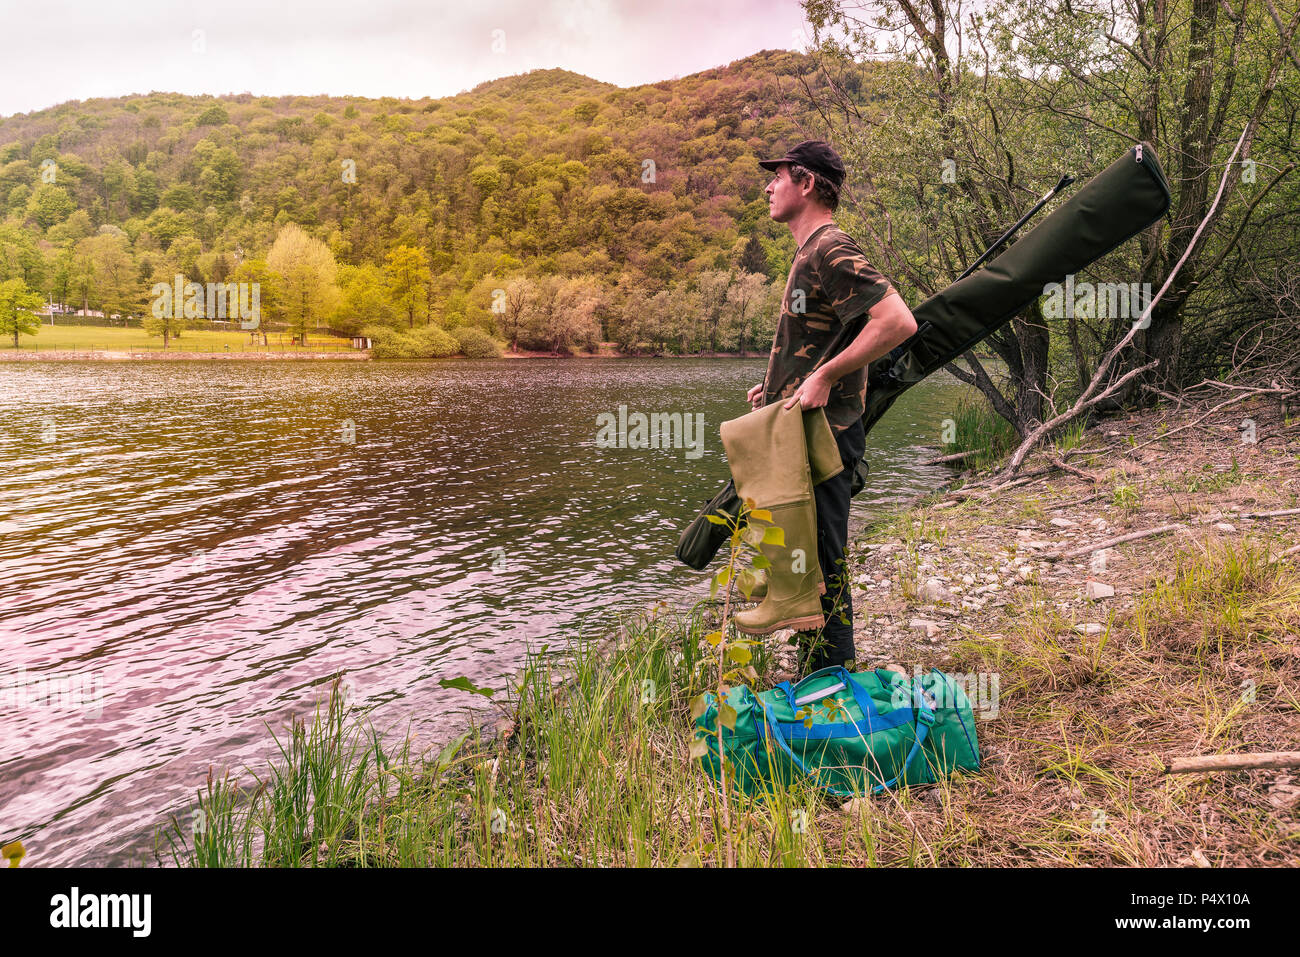 Fishing adventures, carp fishing. Fisherman on a lake shore with camouflage fishing gear, rubber boots, green bag and mimetic rod holdall - Stock Image